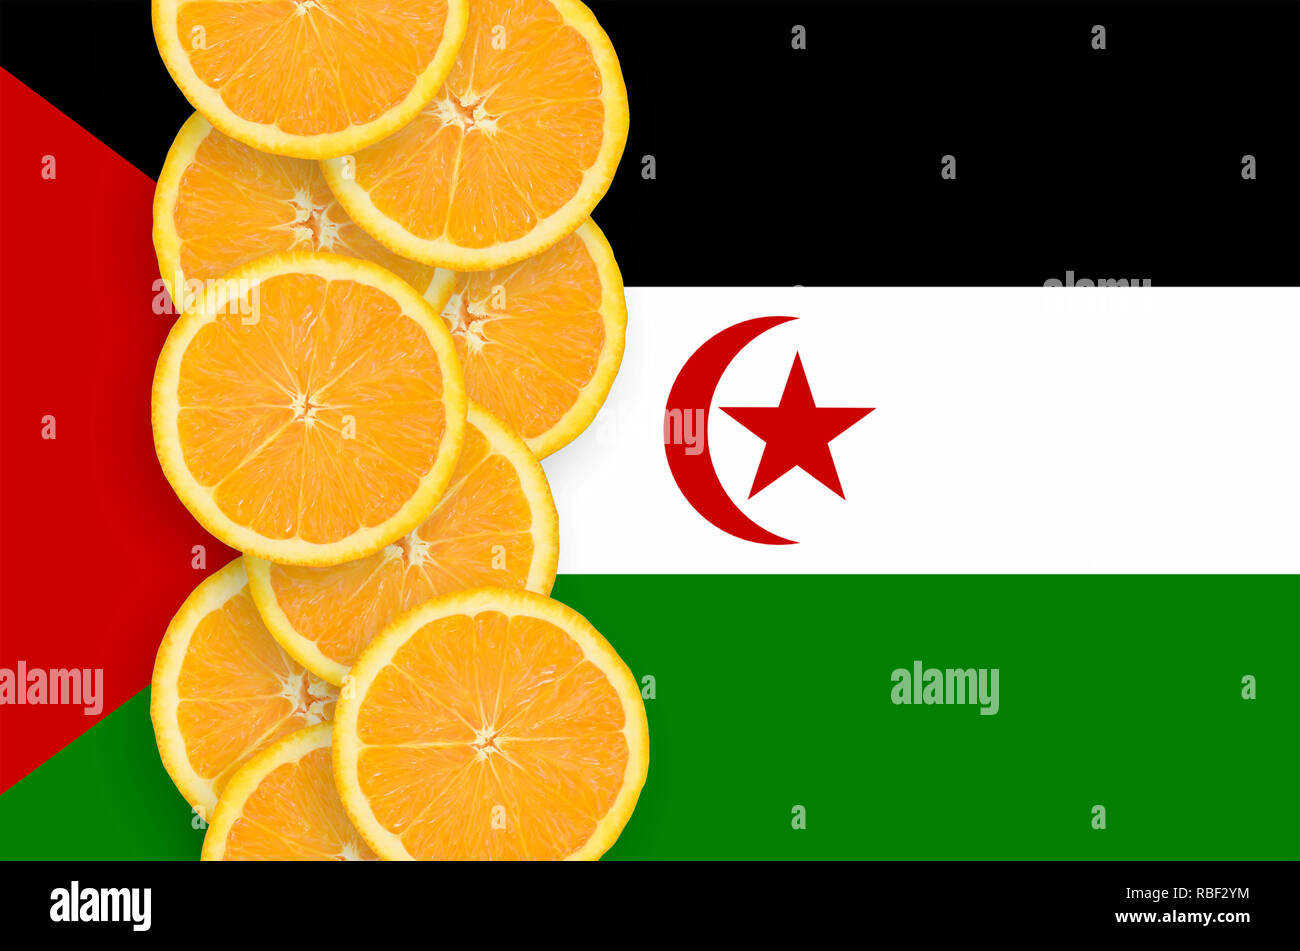 Western Sahara flag and vertical row of orange citrus fruit slices. Concept of growing as well as import and export of citrus fruits - Stock Image